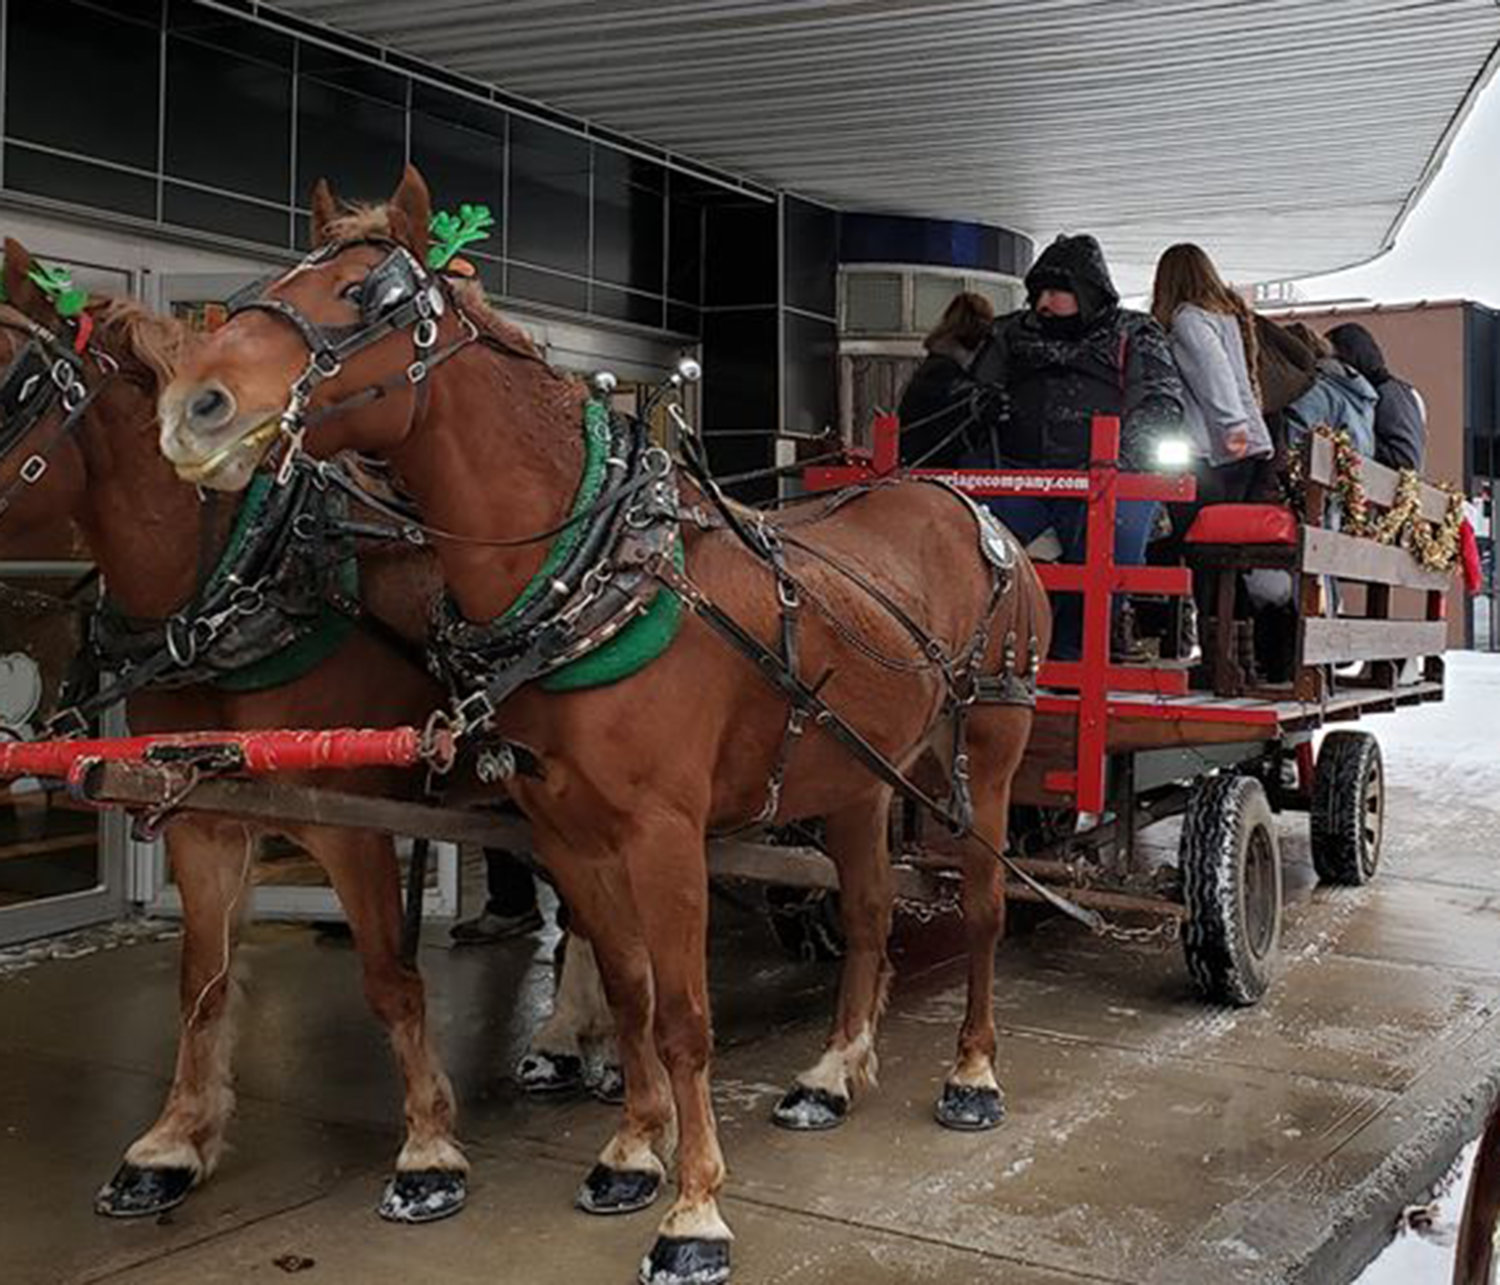 GIDDYUP — A horse drawn carriage picks up local residents at the Kallet Civic Center for the Oneida Christmas Story Downtown Stroll on Sunday, Dec. 1.